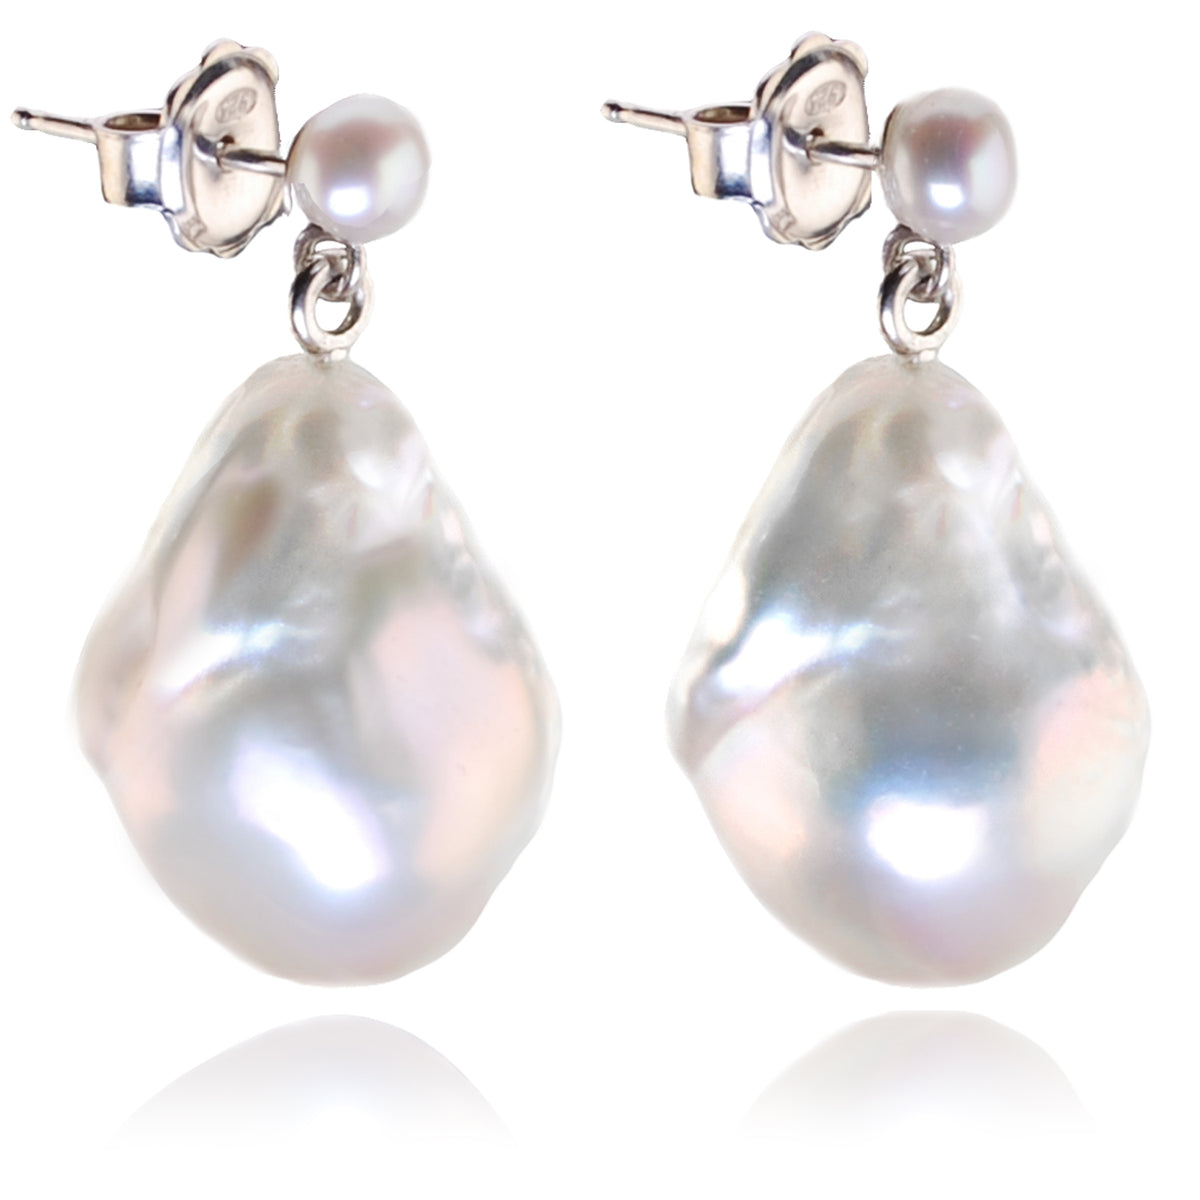 White Baroque Freshwater Pearl Drop Earrings